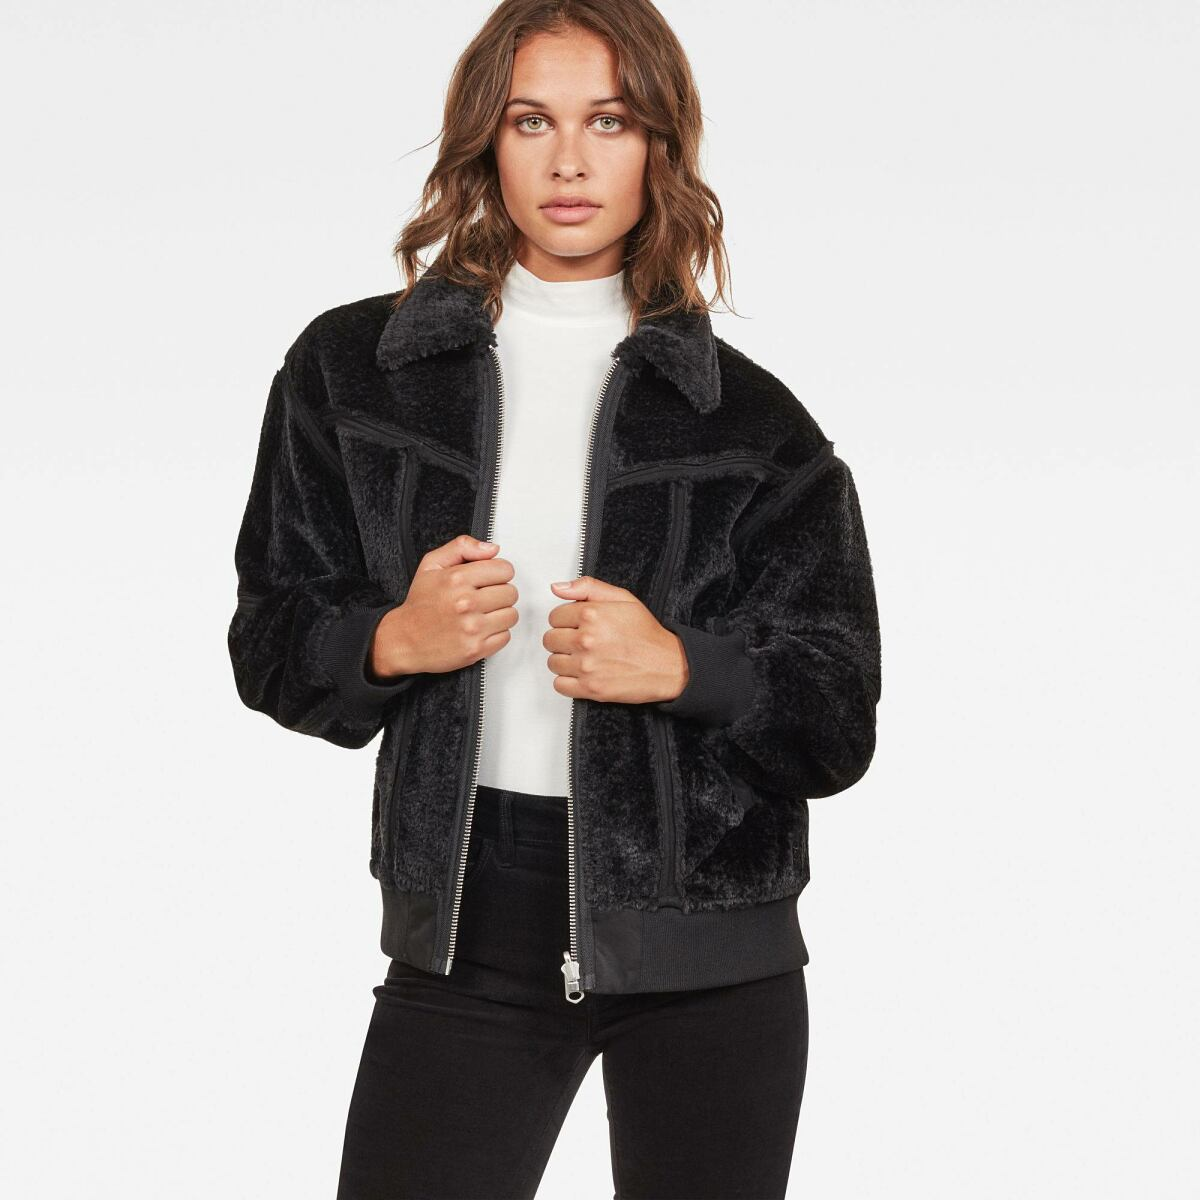 G-Star Women Black Deline Teddy Reversible Bomber Jackets and Blazers Relaxed WOMEN